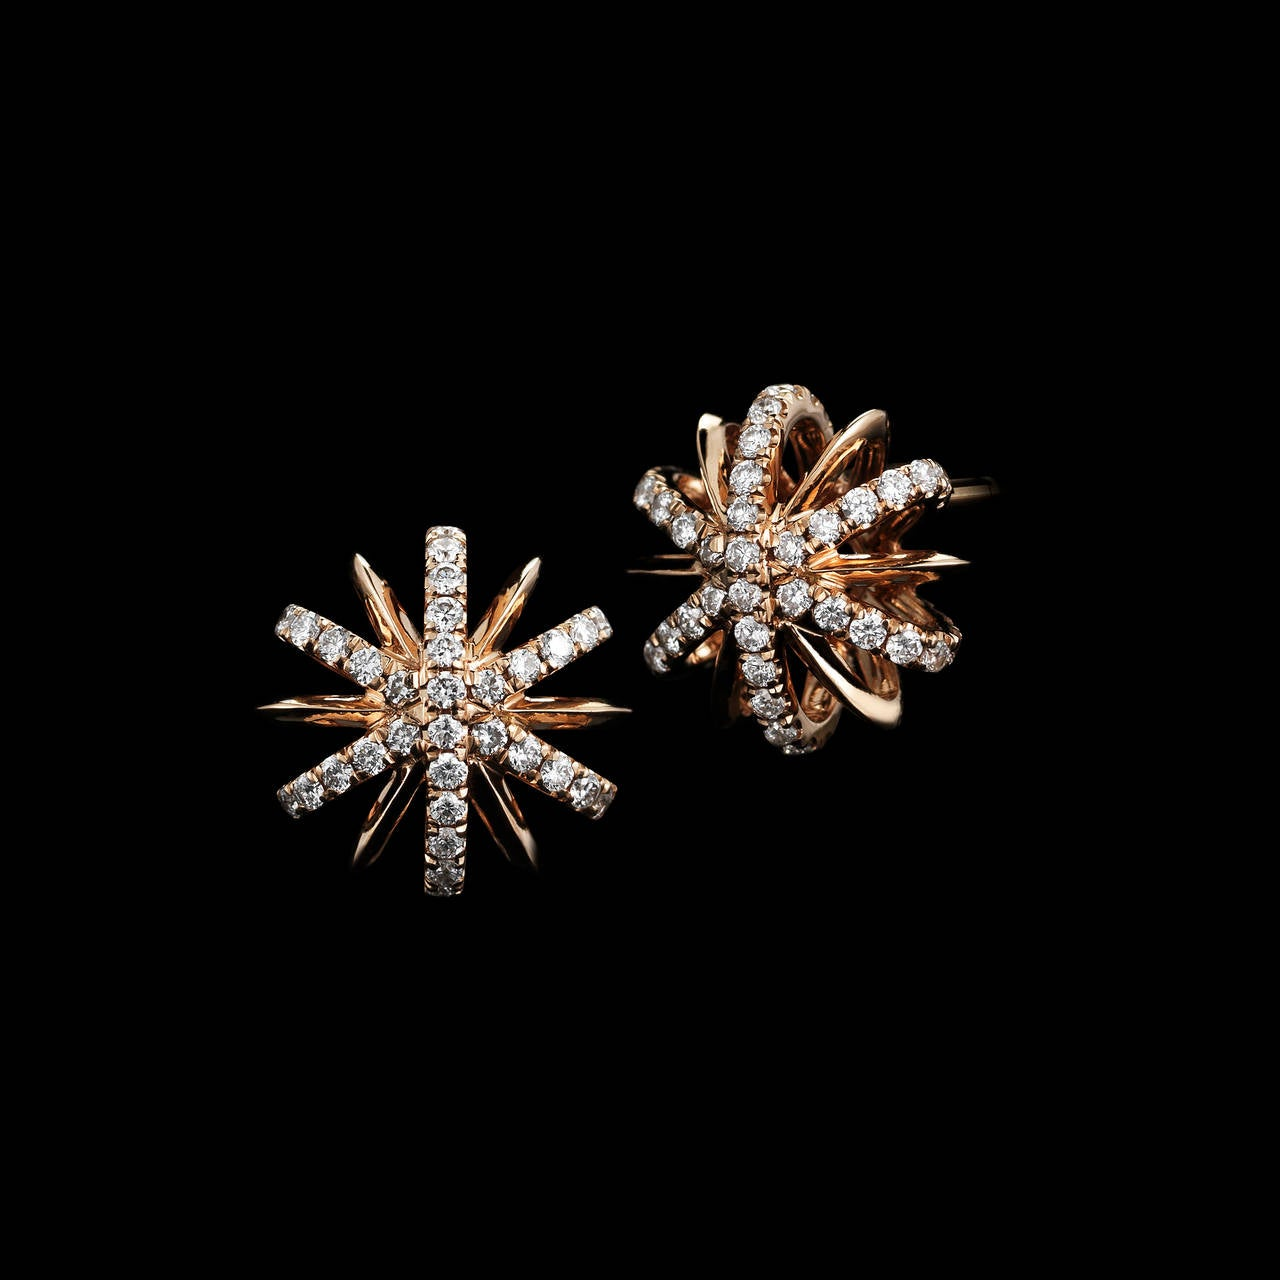 A pair of 10mm snowflake stud earrings with Alexandra Mor's signature details of 1mm melee bands and knife-edged wire. 18 karat Rose Gold.  Limited Edition of 25 Signed by artist. Crafted in the USA.